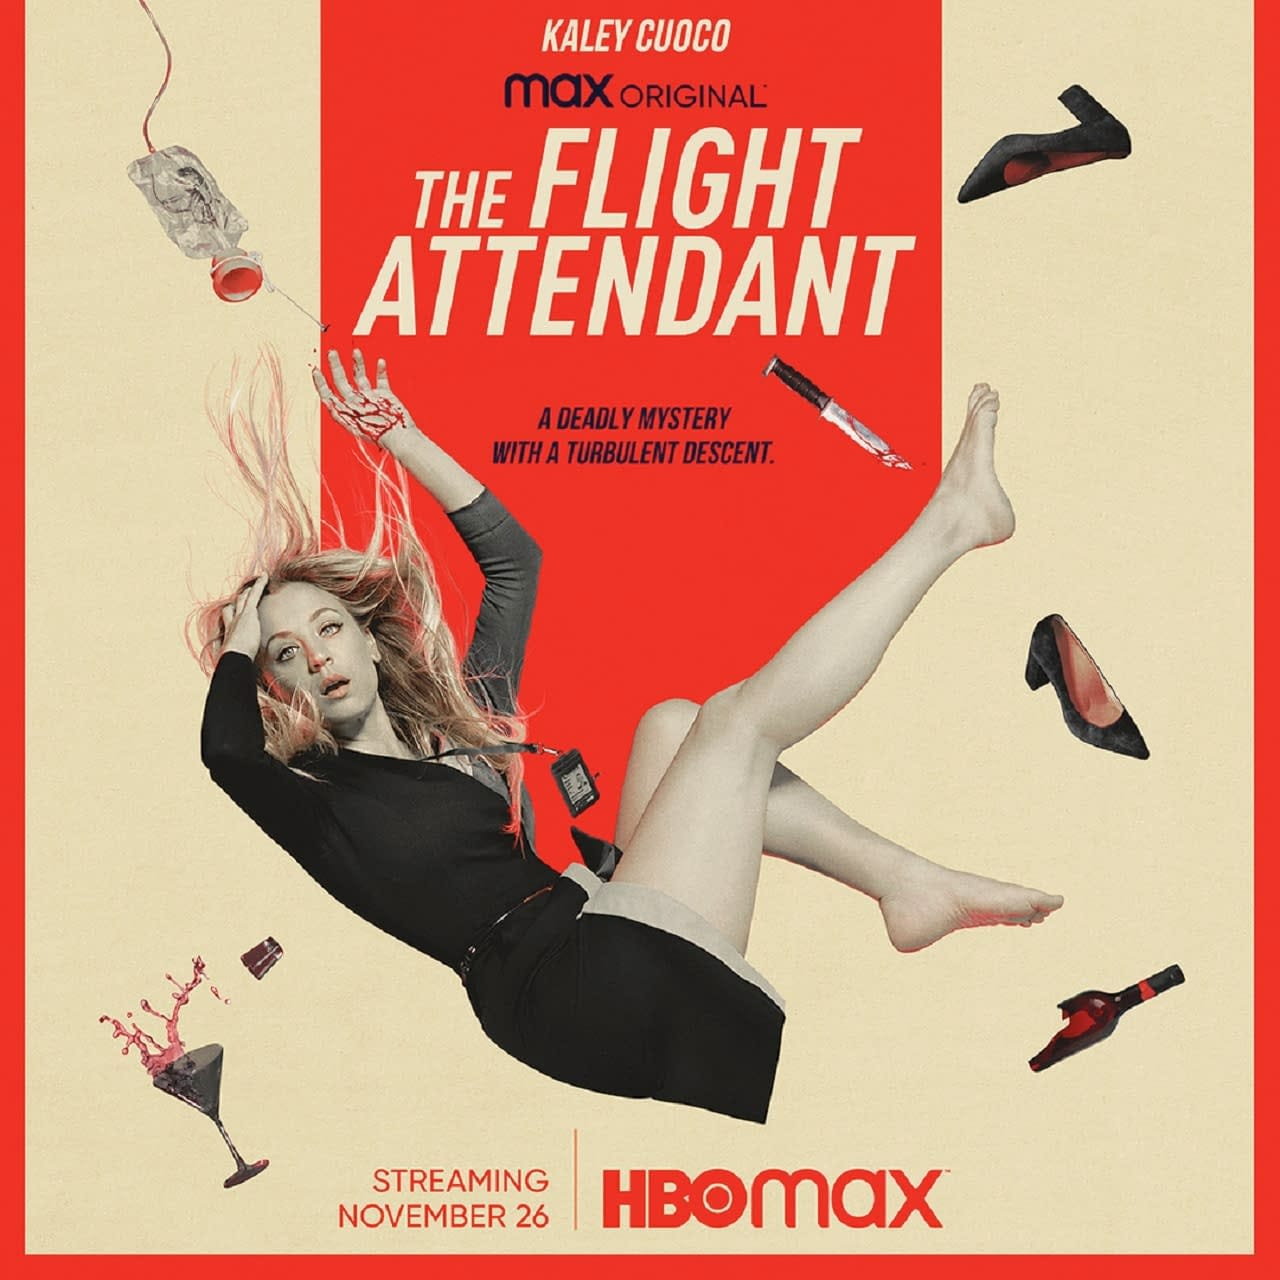 The Flight Attendant: HBO Max, Kaley Cuoco Series Booked for November